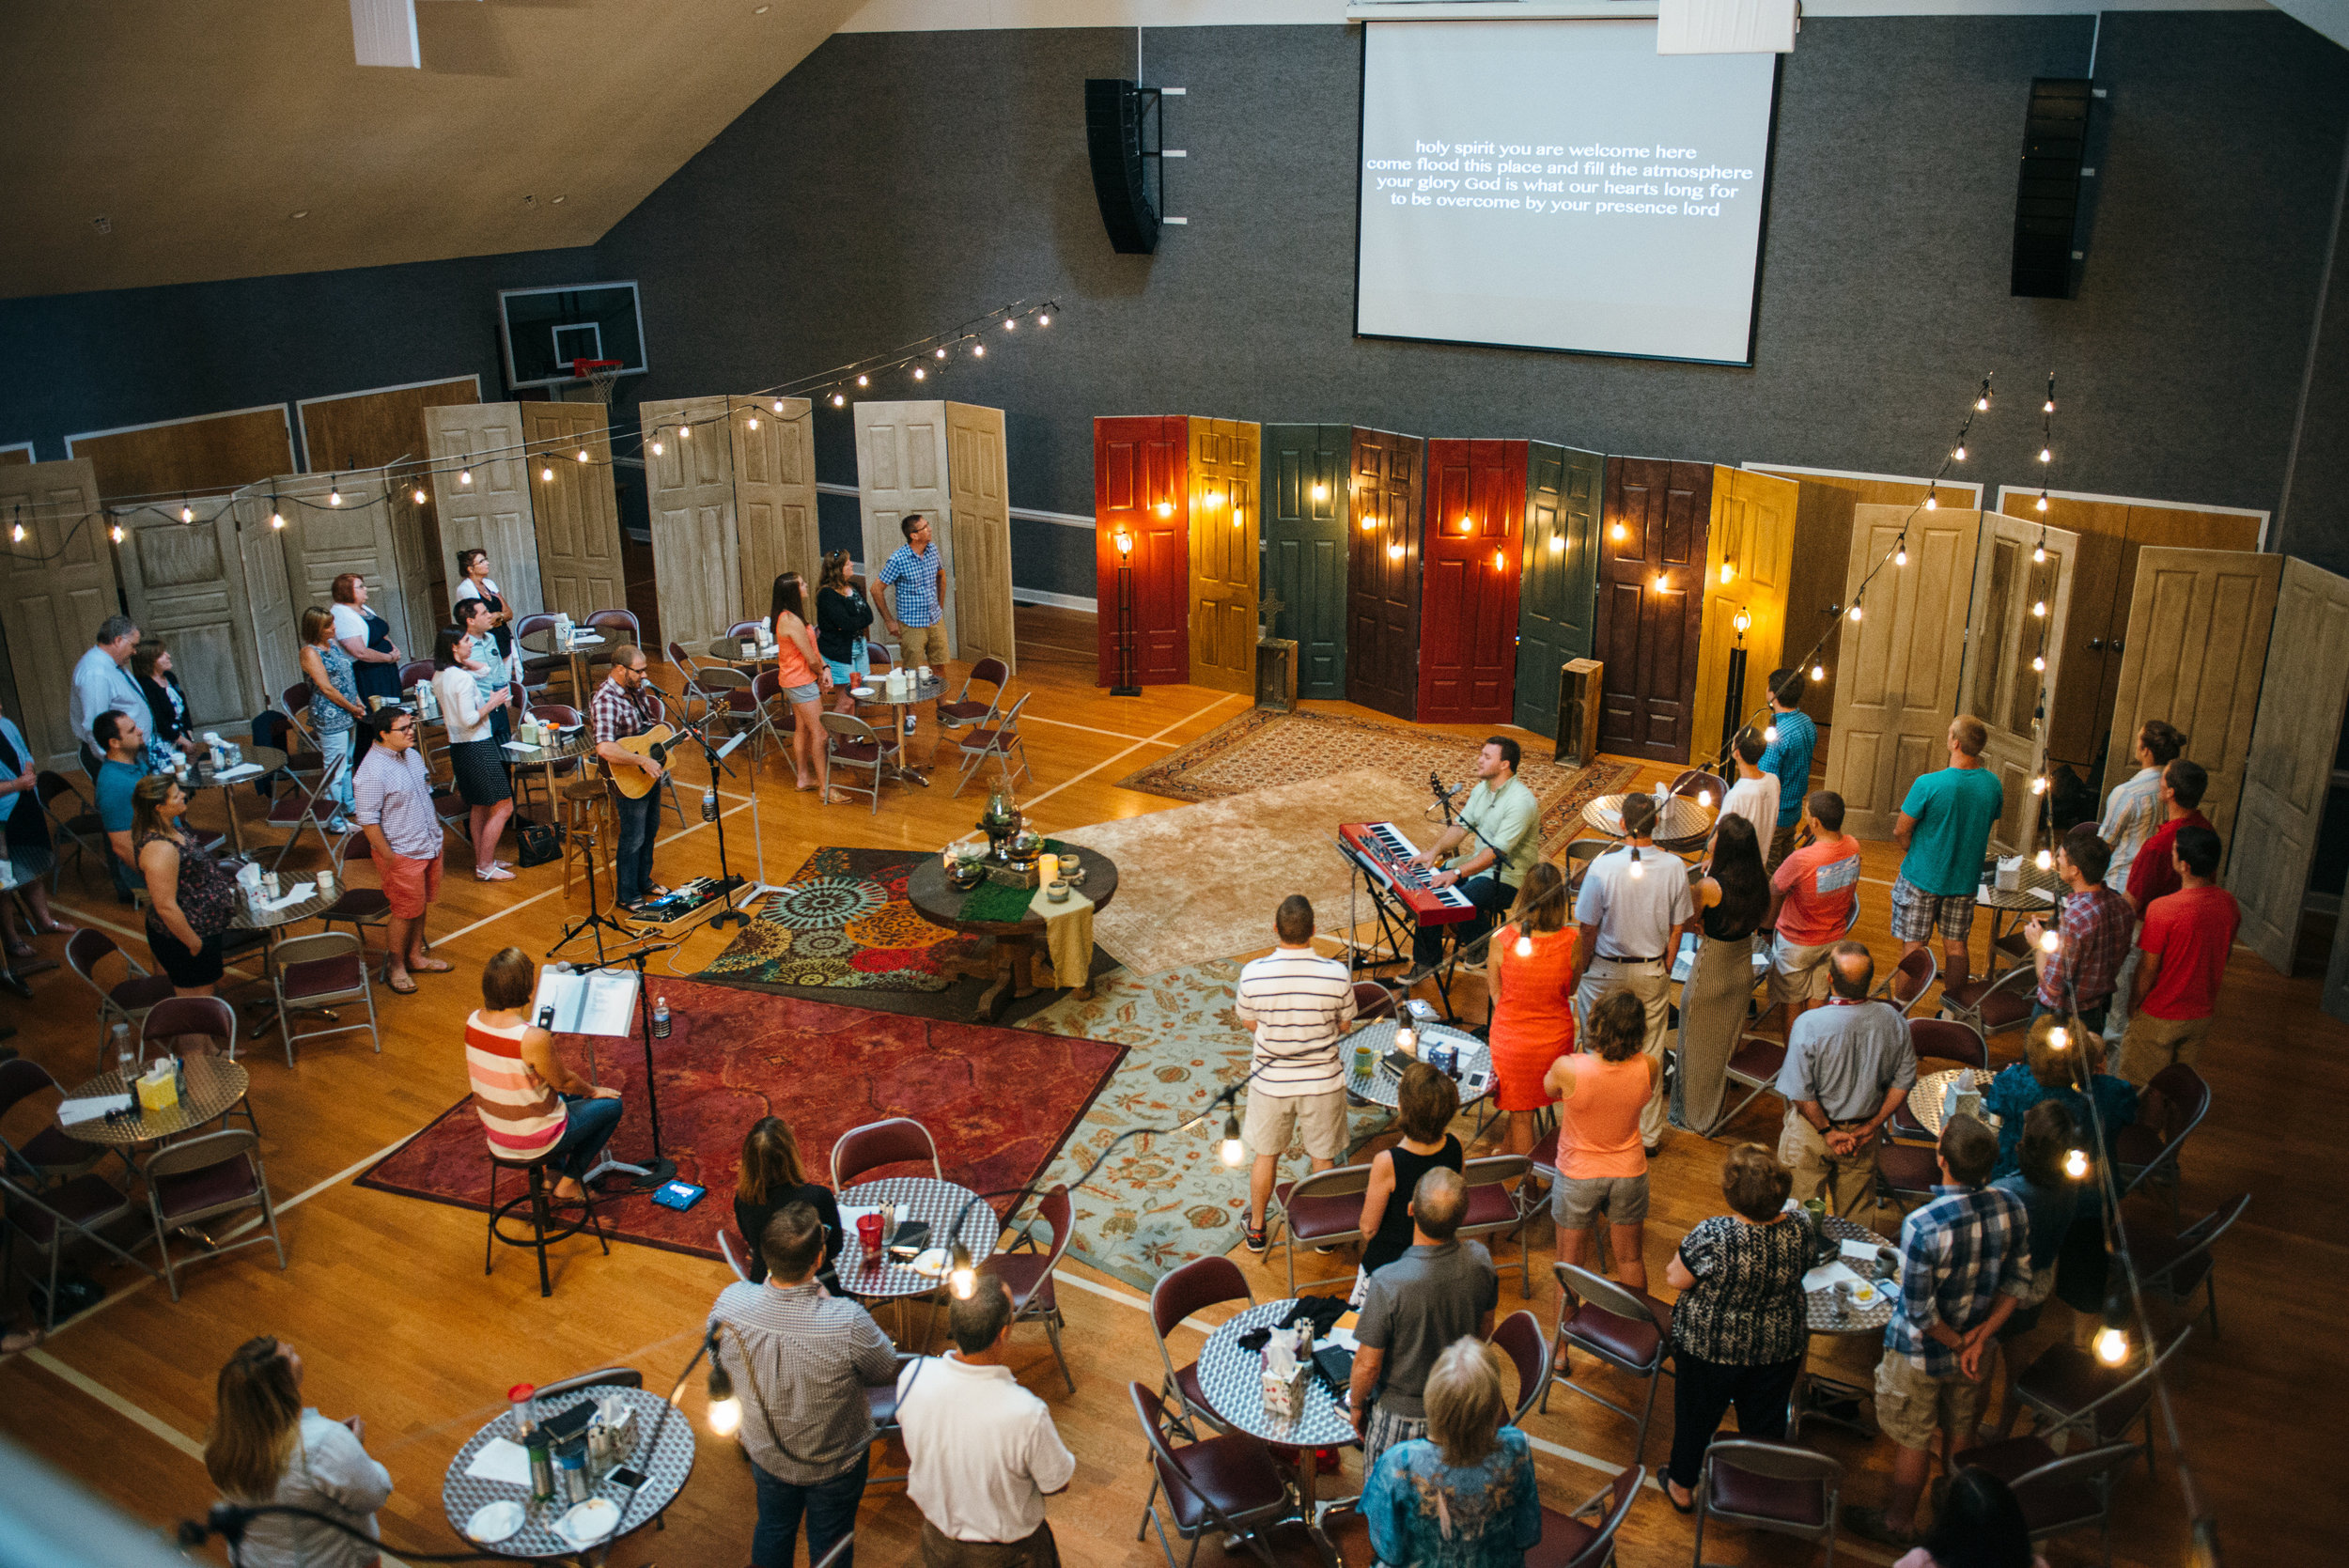 worship in the round… - in 2016, we got rid of the stage! putting the communion table in the center of the room and leading from the same level as the community reinforces the truth: that God works through all of us, and that no one is set above or more worthy than another.